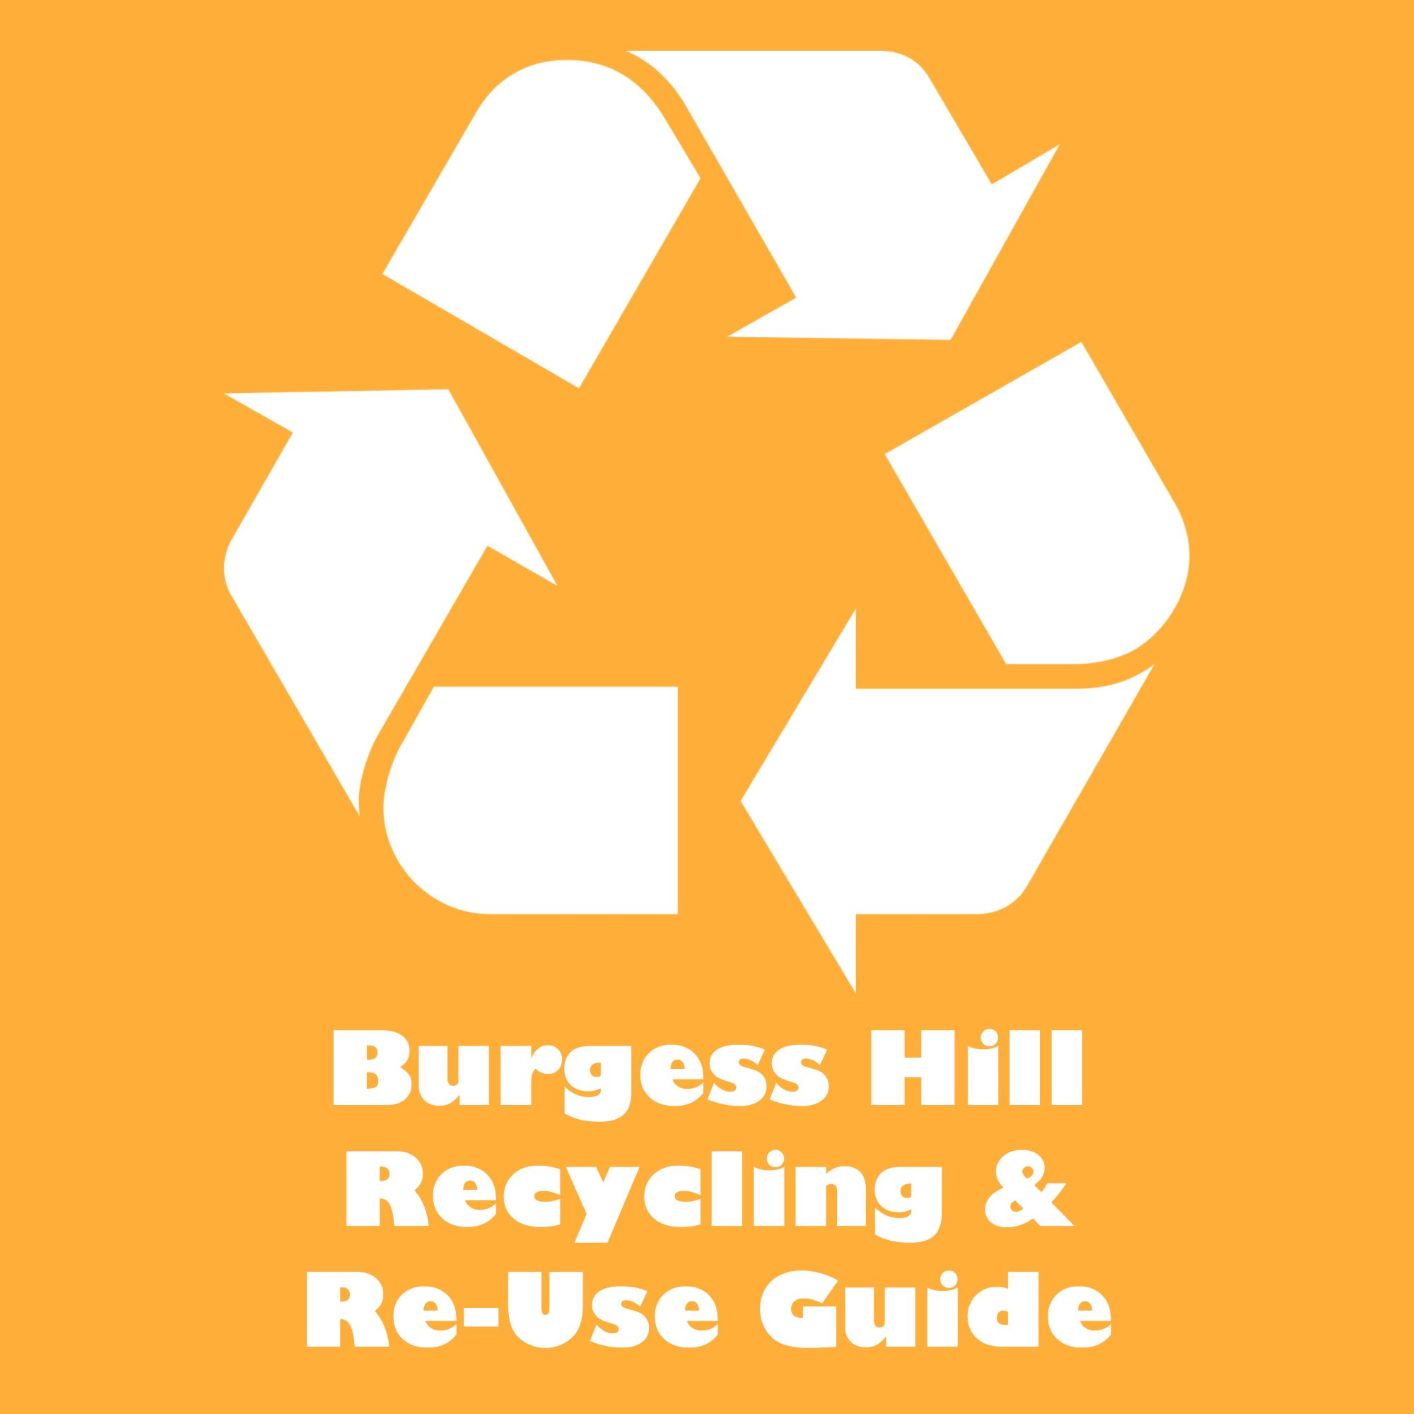 Image reads Burgess Hill Recycling and Re-use guide and links to a PDF of the guide